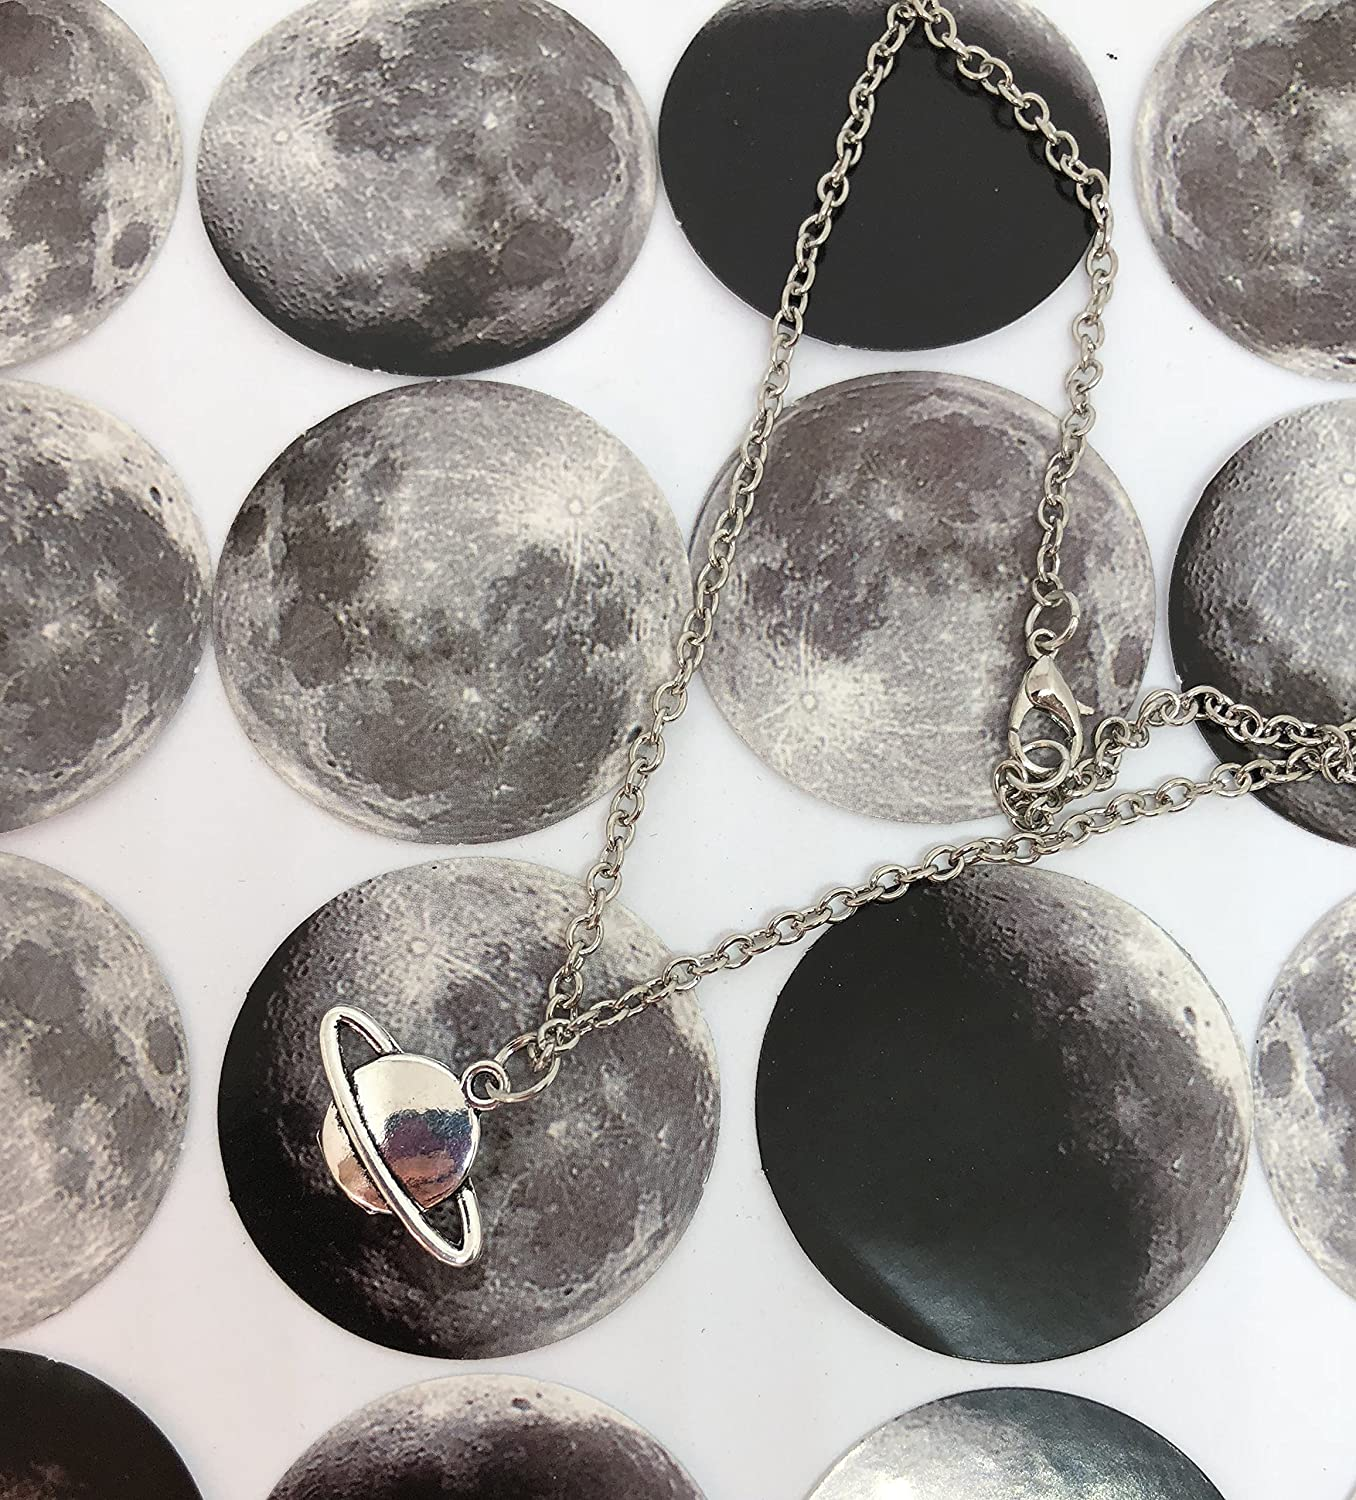 Rings of Saturn silver tone charm Necklace - Handmade Planet jewelry